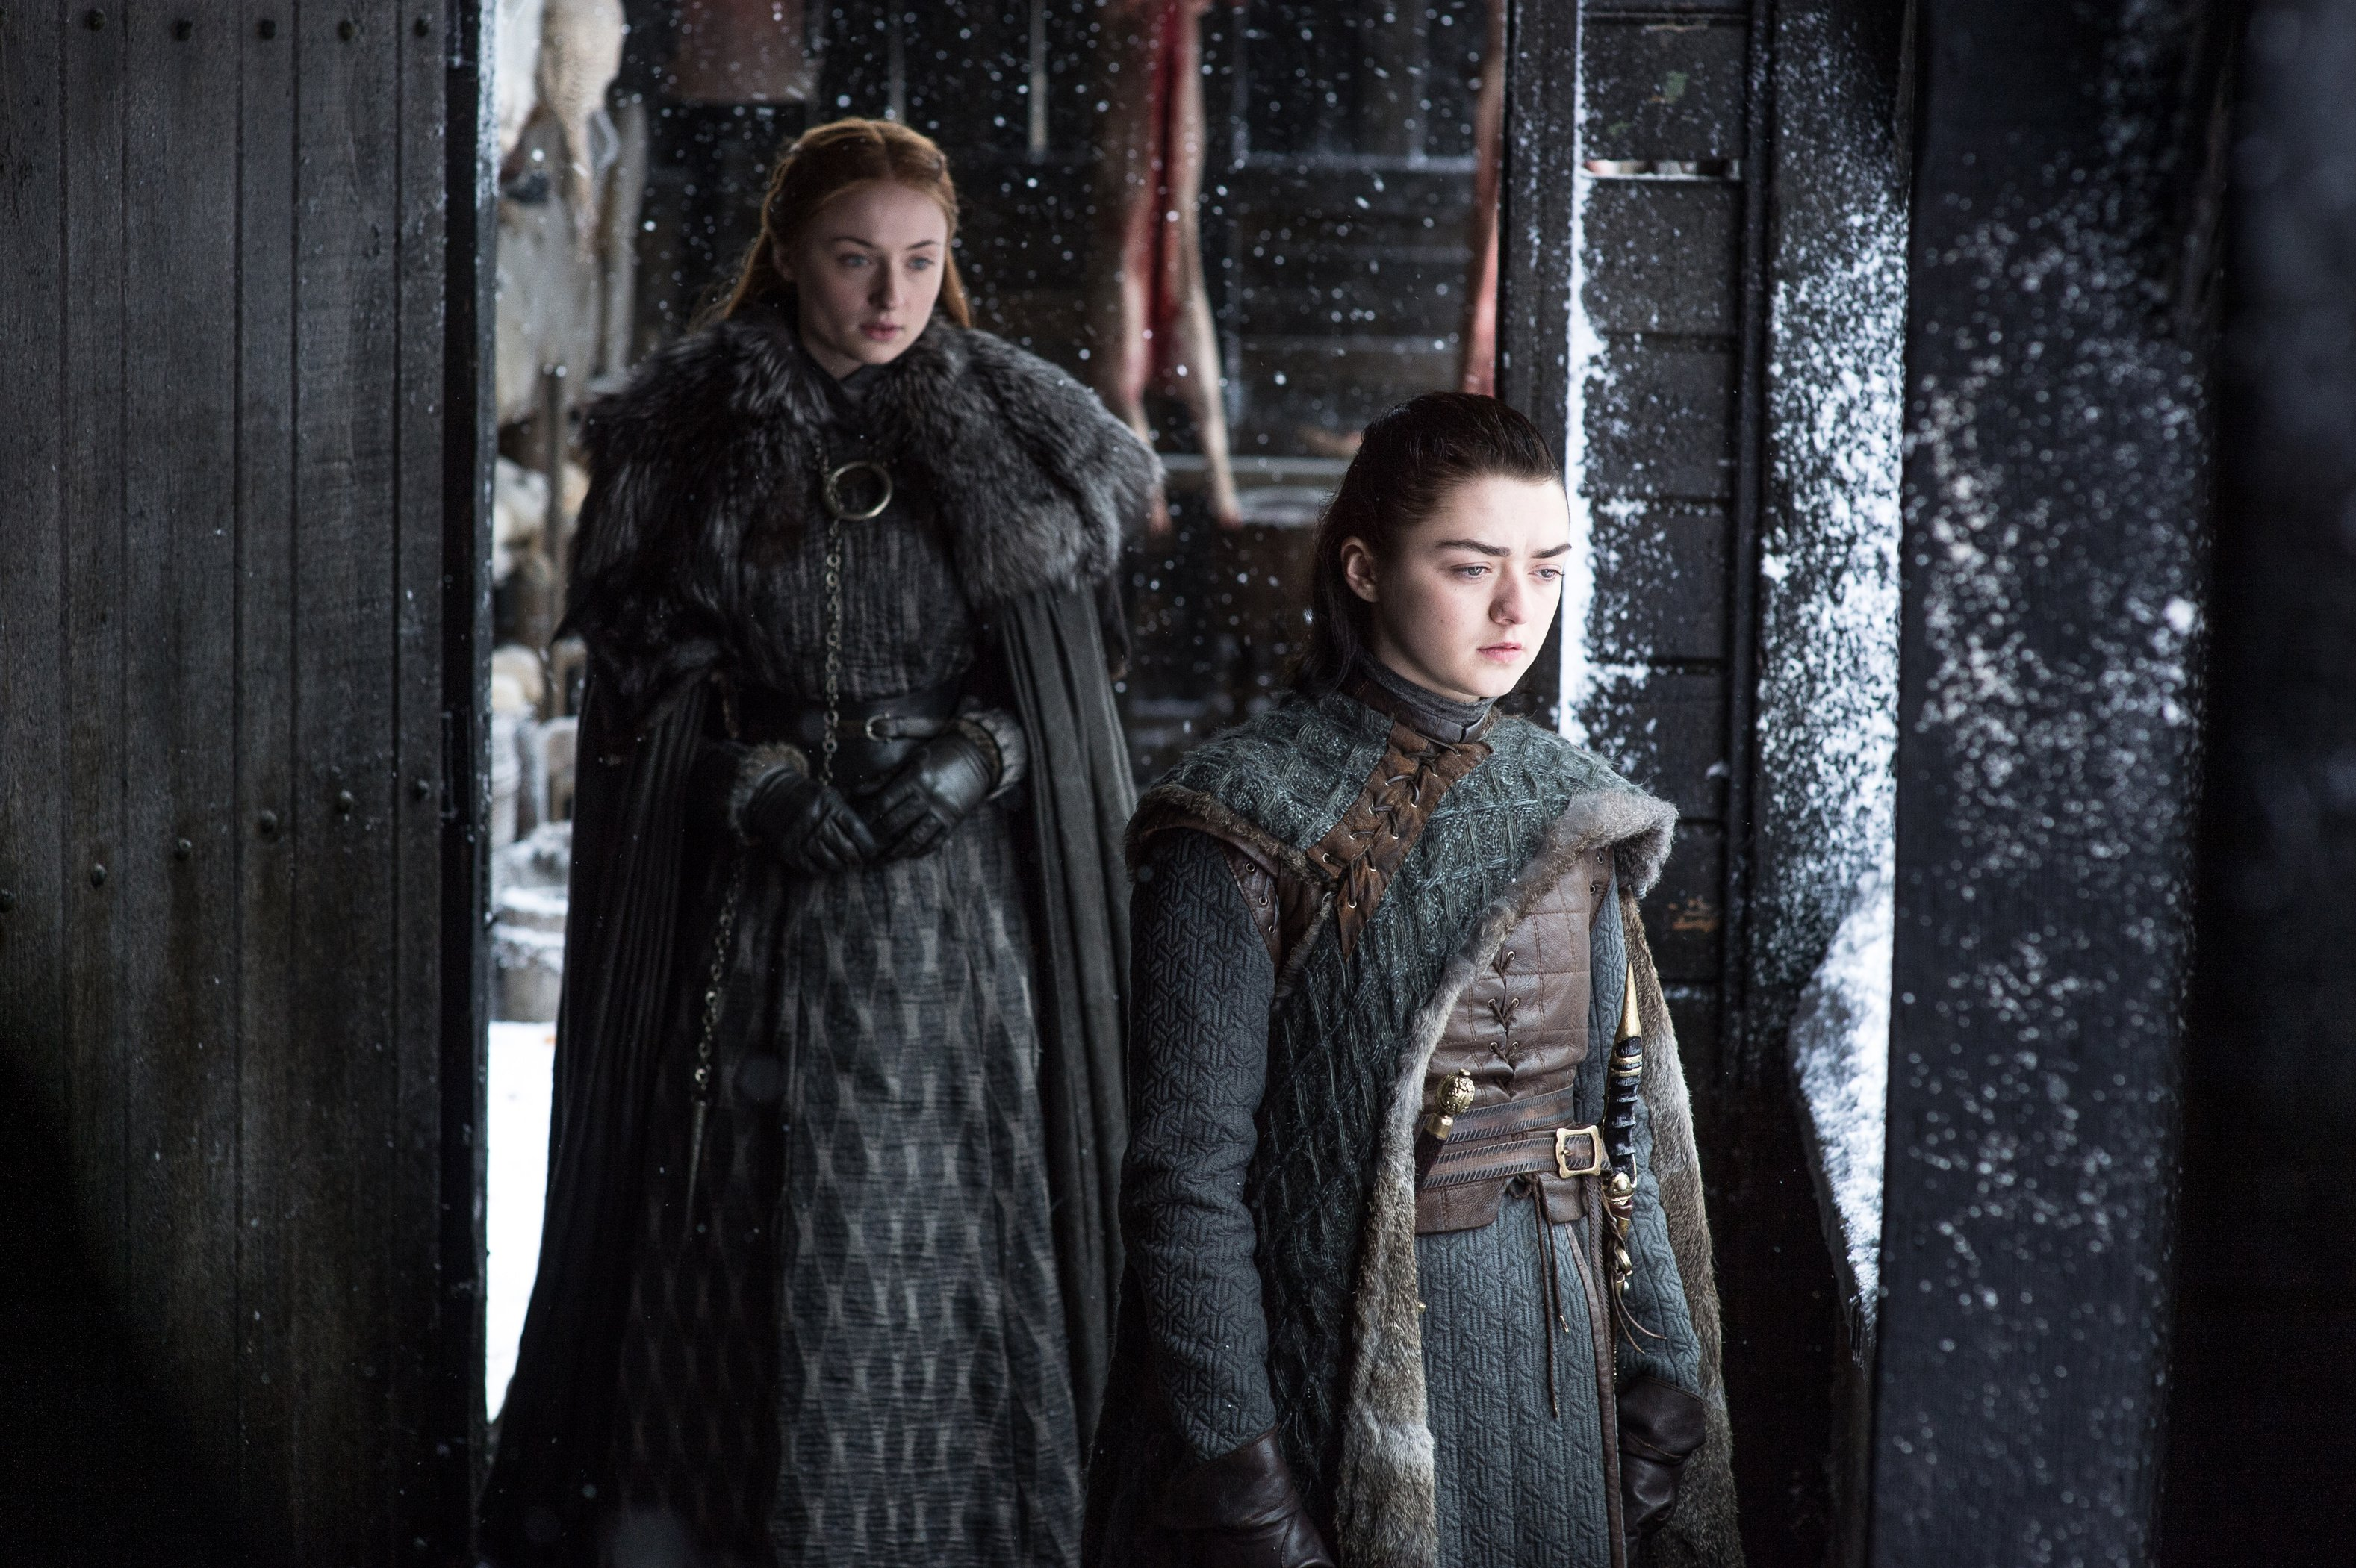 Game of Thrones 7x06 - Beyond the Wall